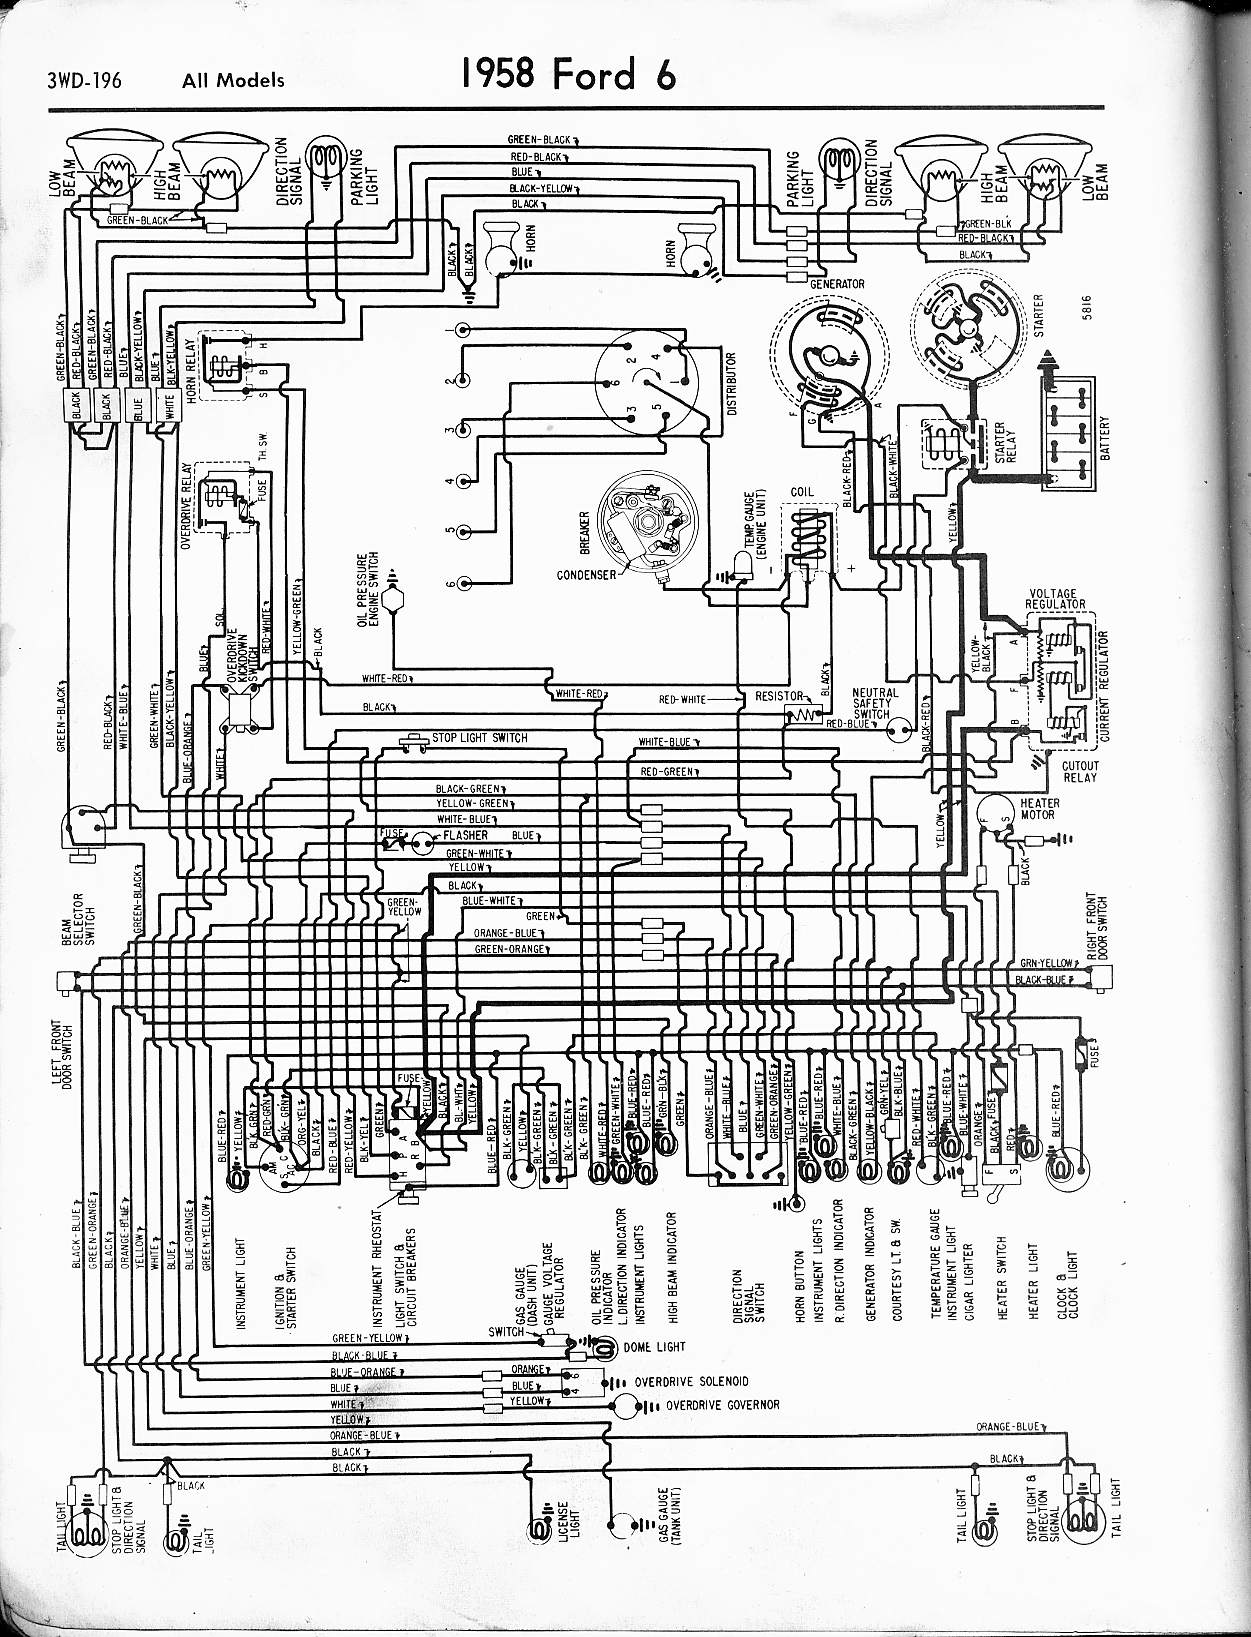 Ford Electronic Ignition Wiring Diagram 1983 Manual E Books F 150 Strait Six Coil 1960 Explained57 65 Diagrams